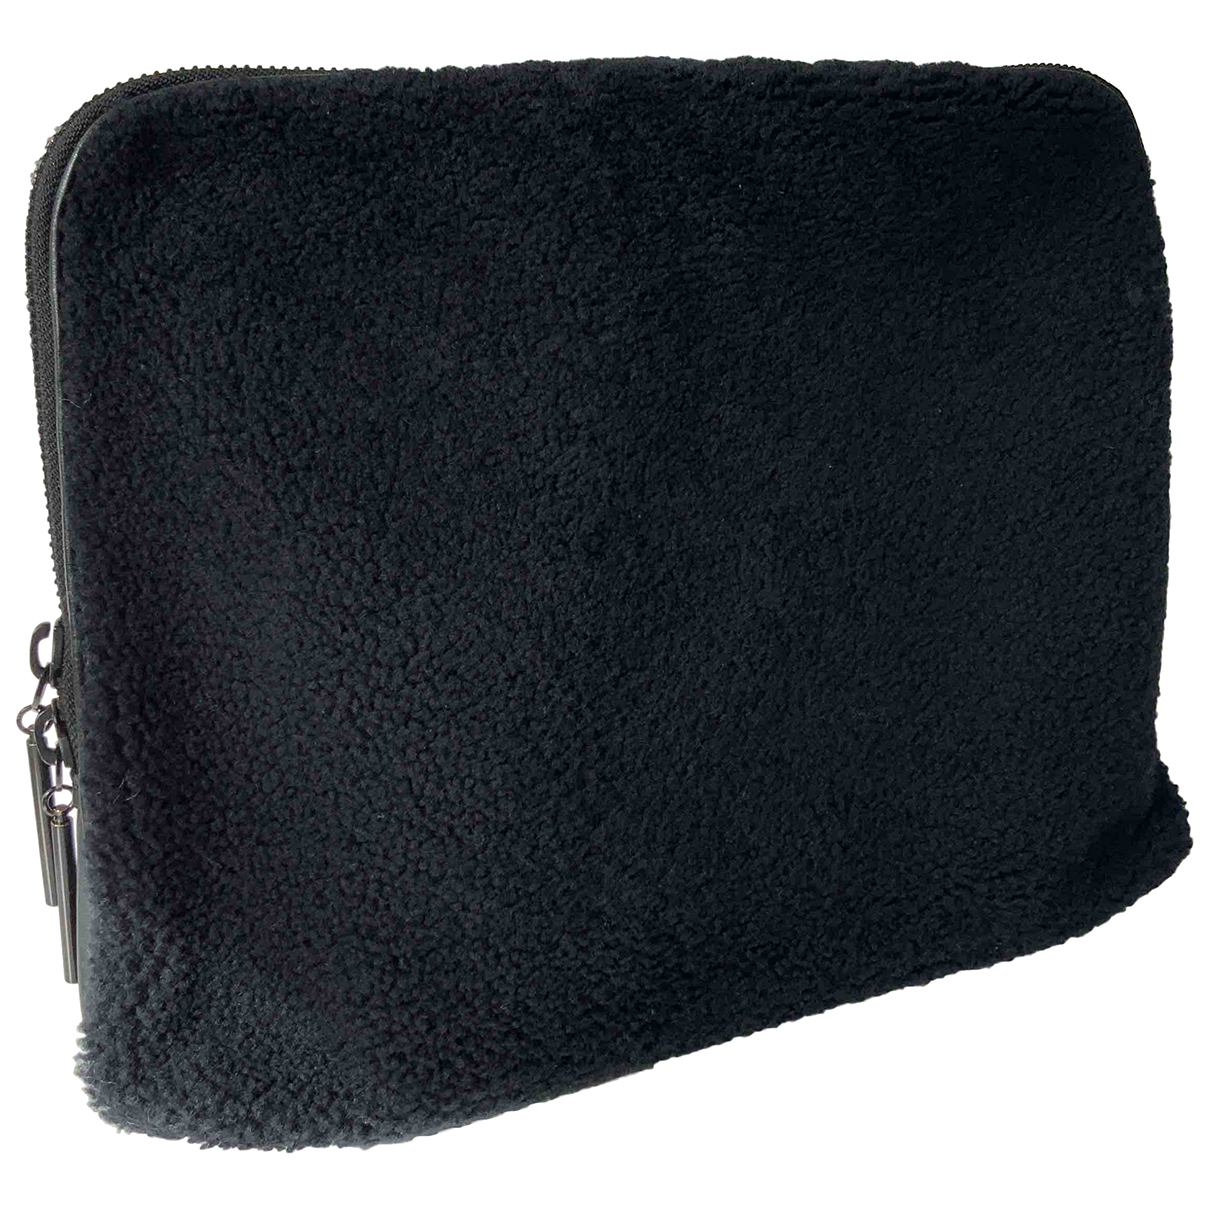 3.1 Phillip Lim \N Clutch in  Schwarz Fell